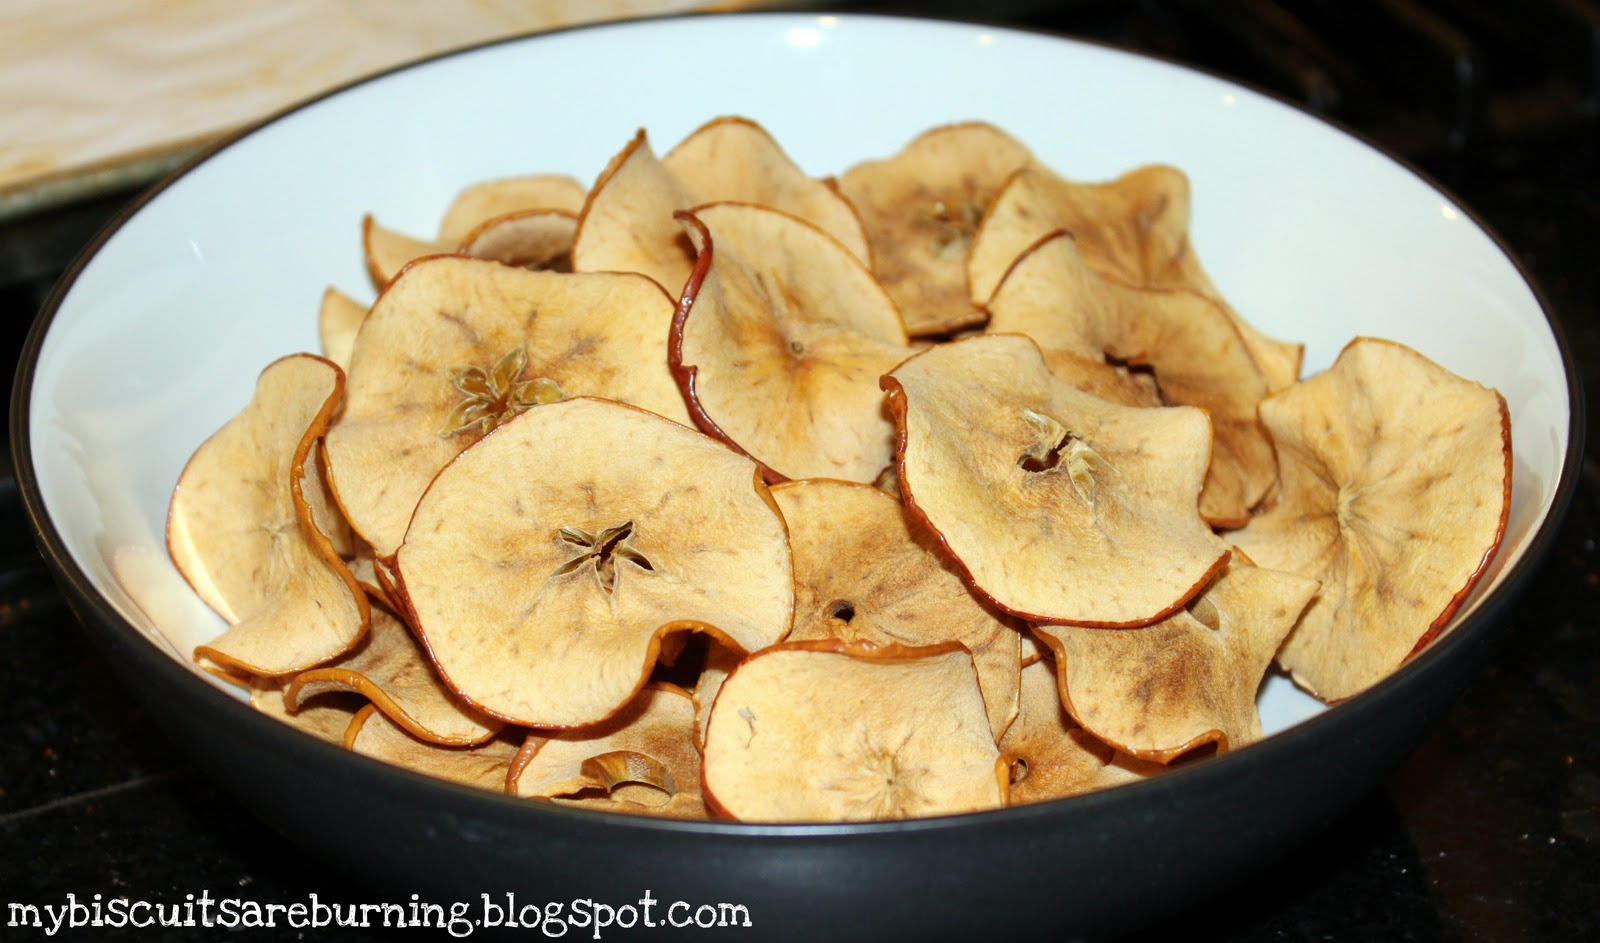 My Biscuits are Burning: Homemade Apple Chips